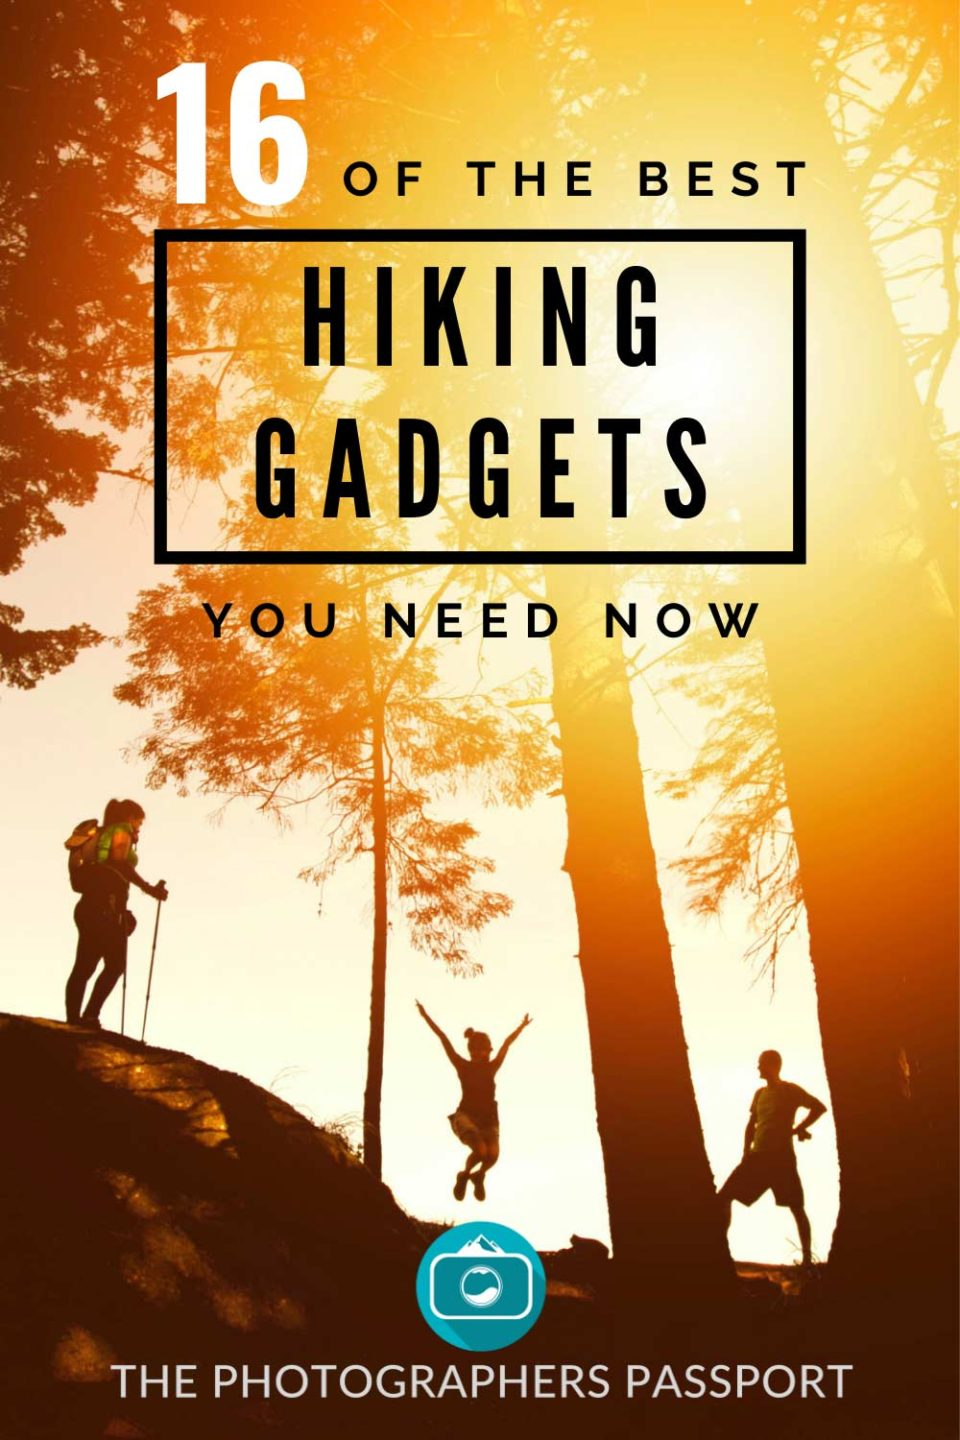 Check out 16 of the best hiking gadgets currently on the market.  From hiking watches, and solar panels, to water filters it's all here.